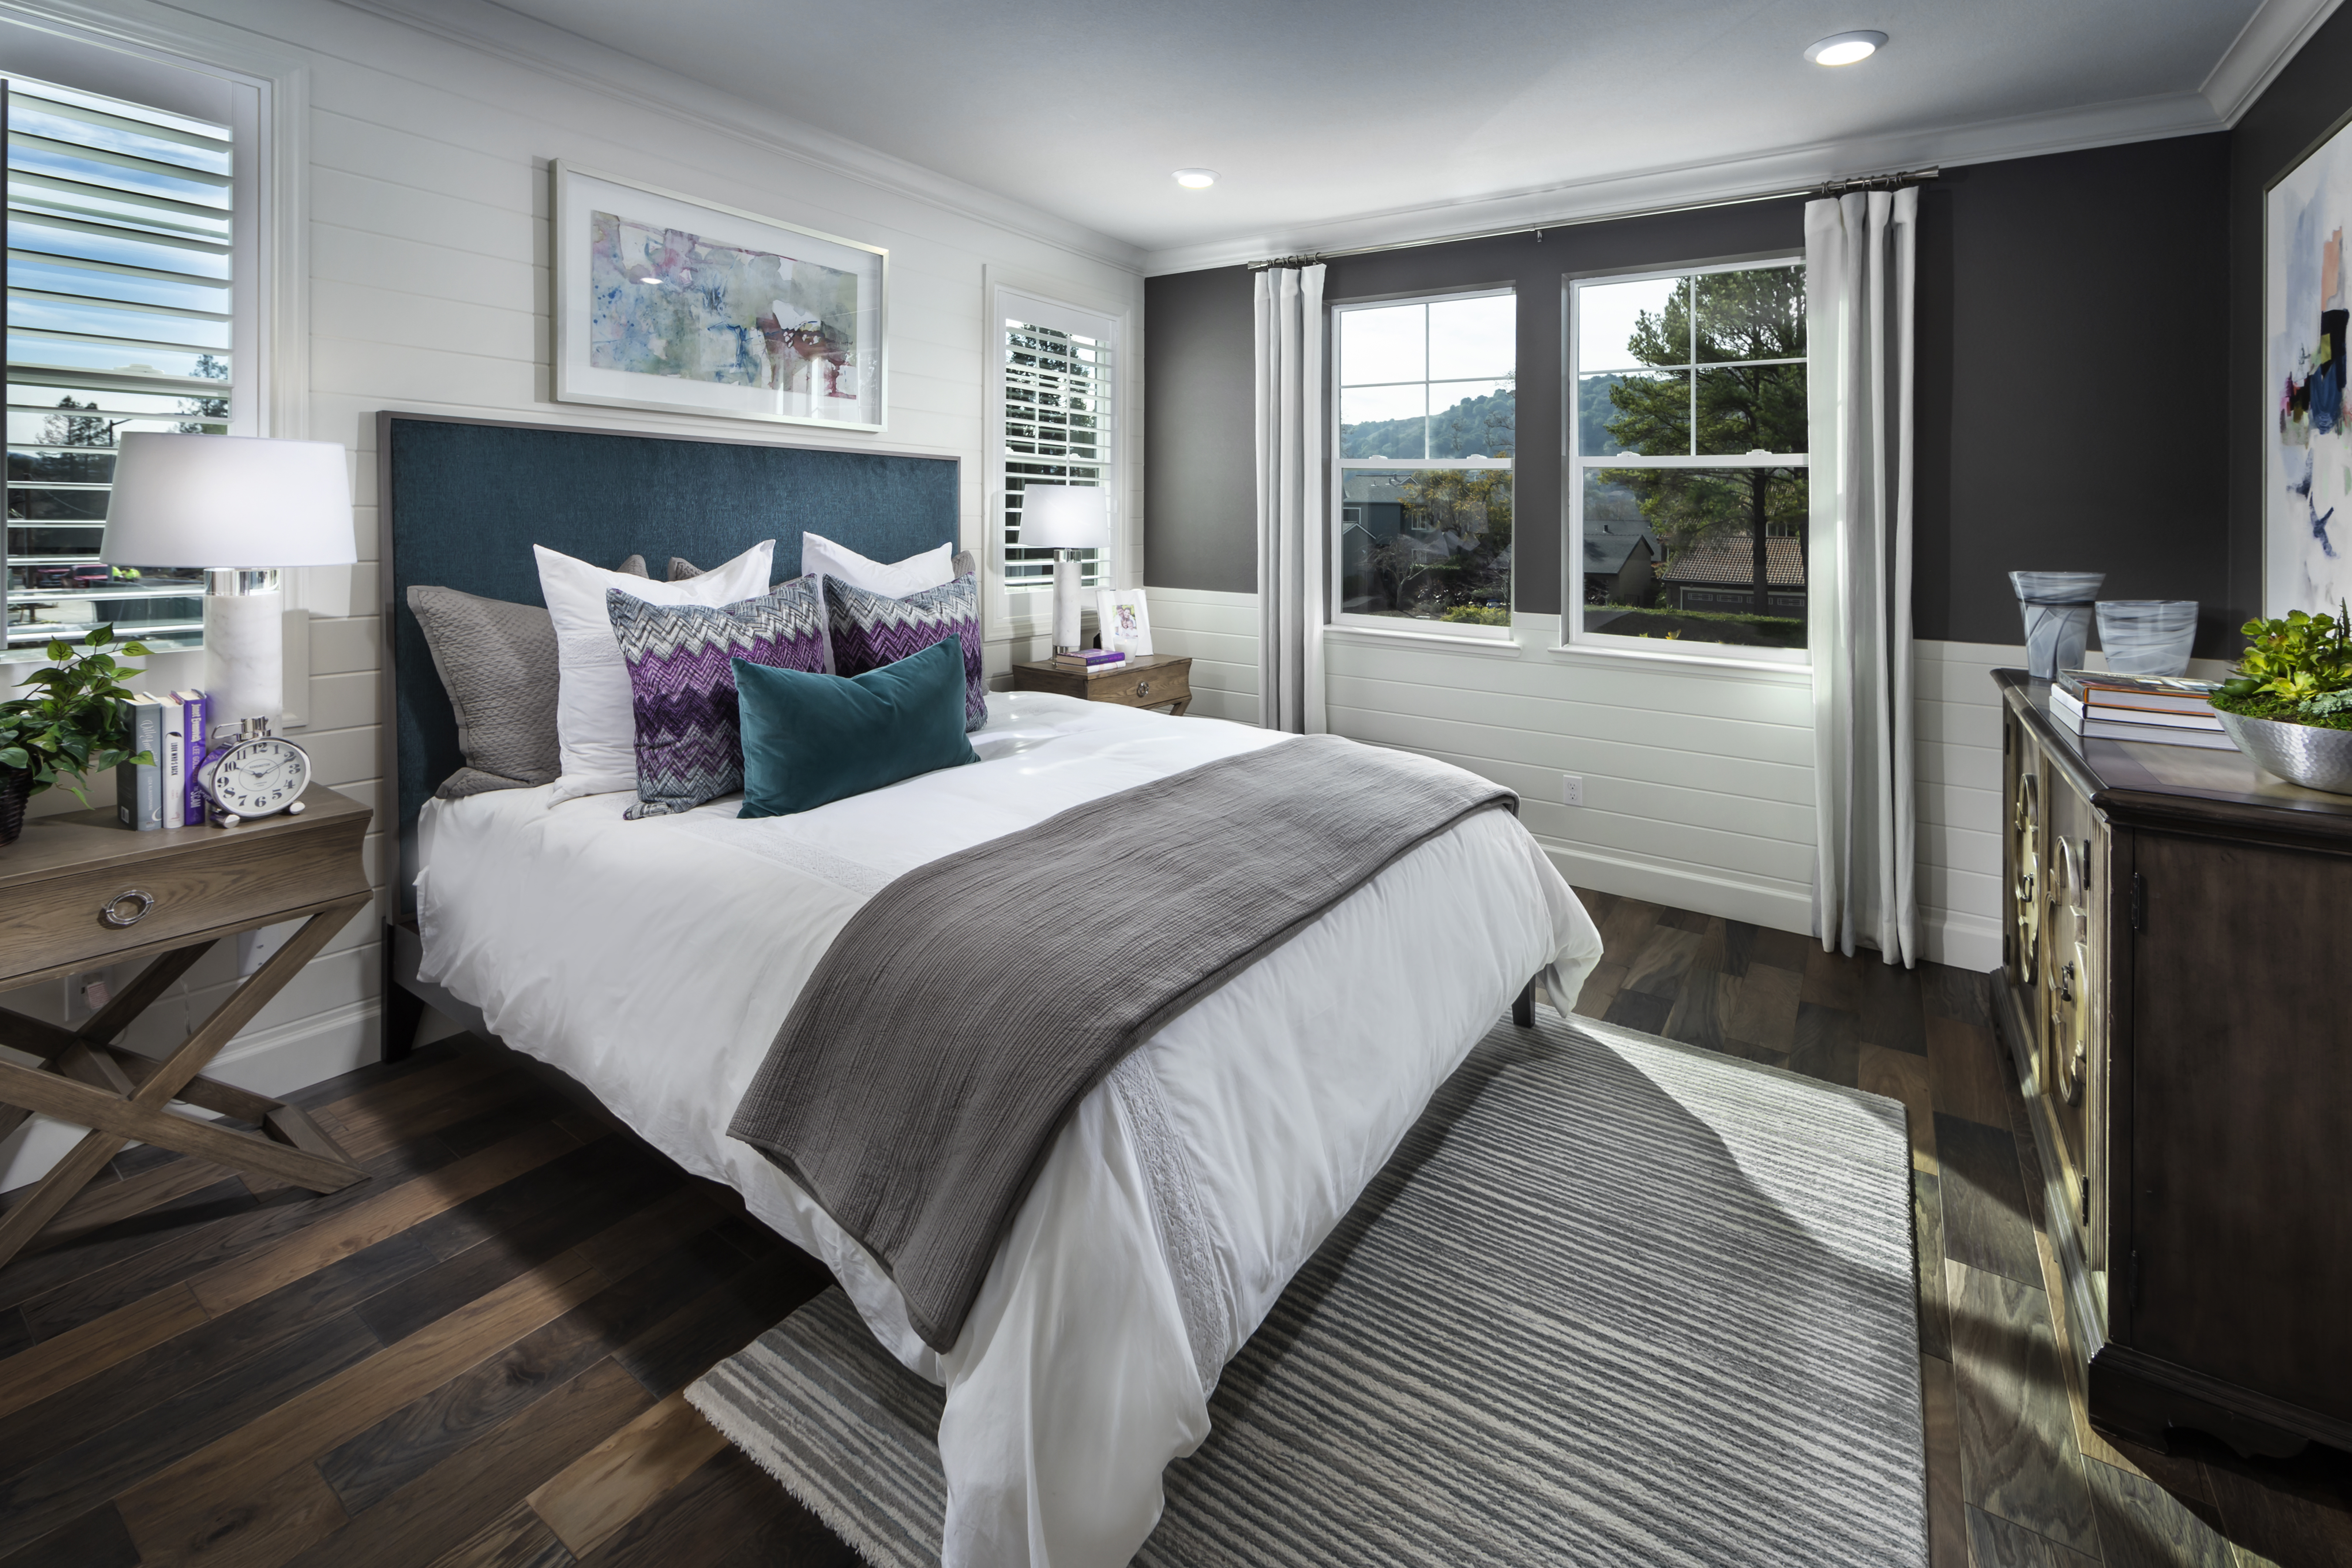 New Homes in Moraga, CA - Moraga Town Center Plan 6 - Master Bedroom